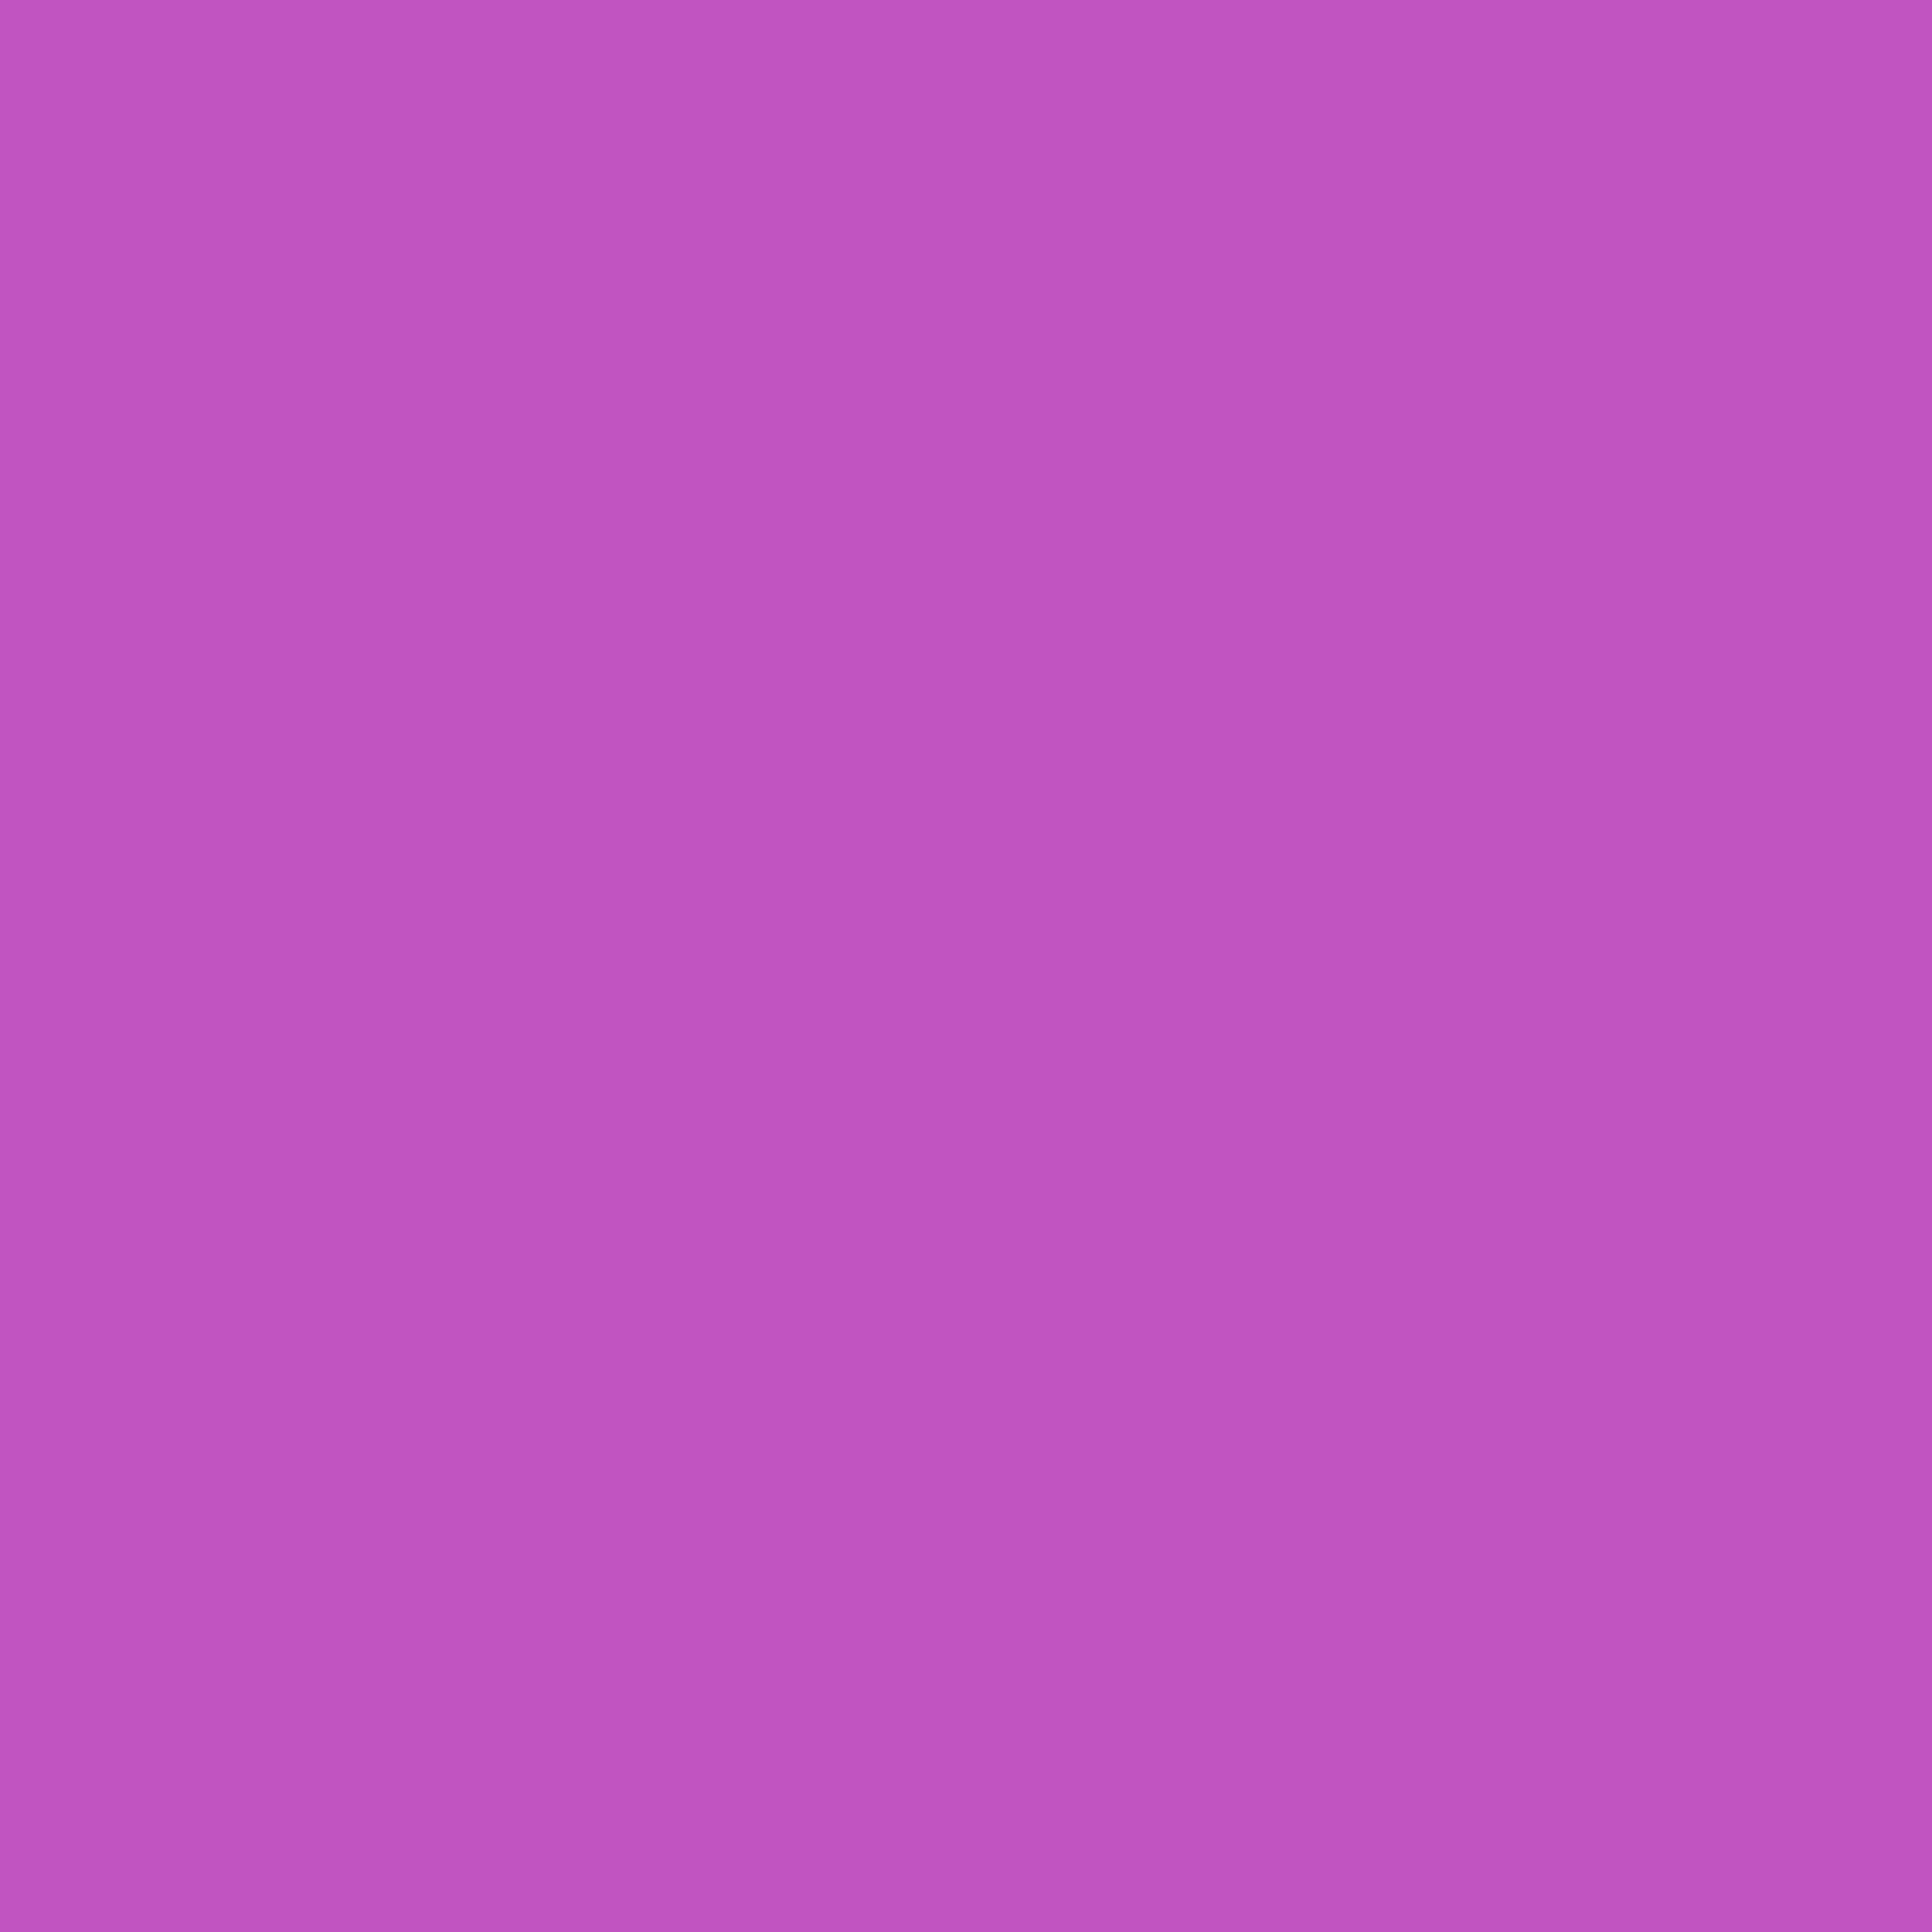 2732x2732 Fuchsia Crayola Solid Color Background